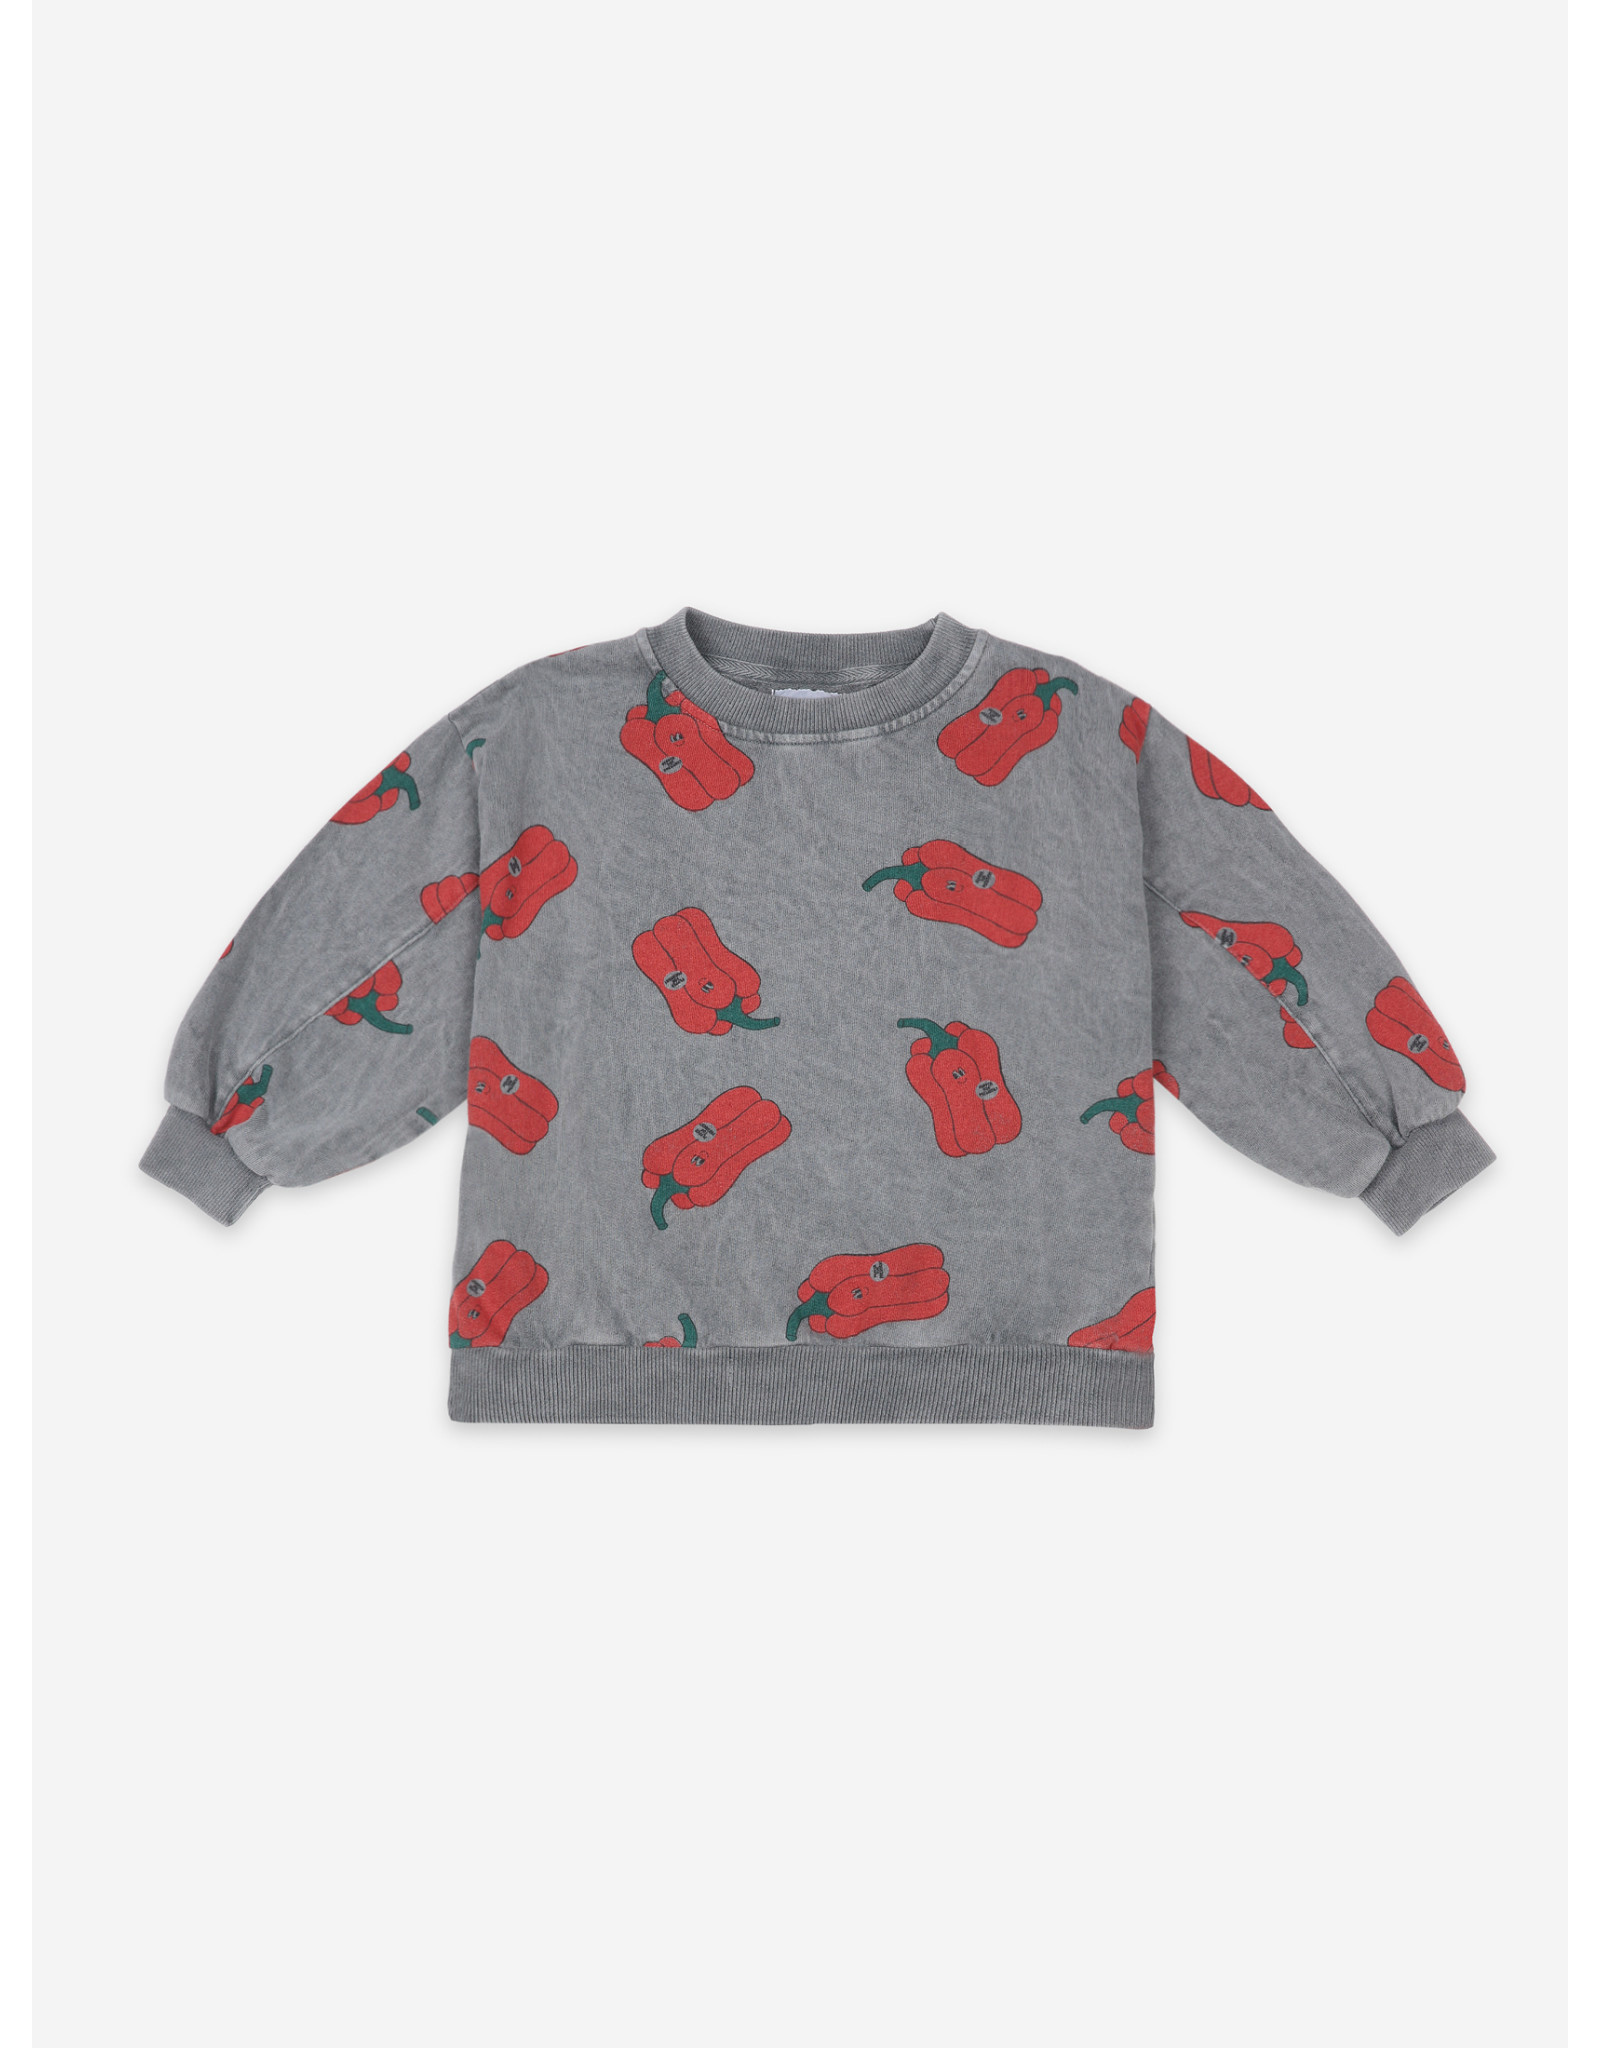 Bobo Choses Bobo Choses Vote For Pepper All Over Sweatshirt